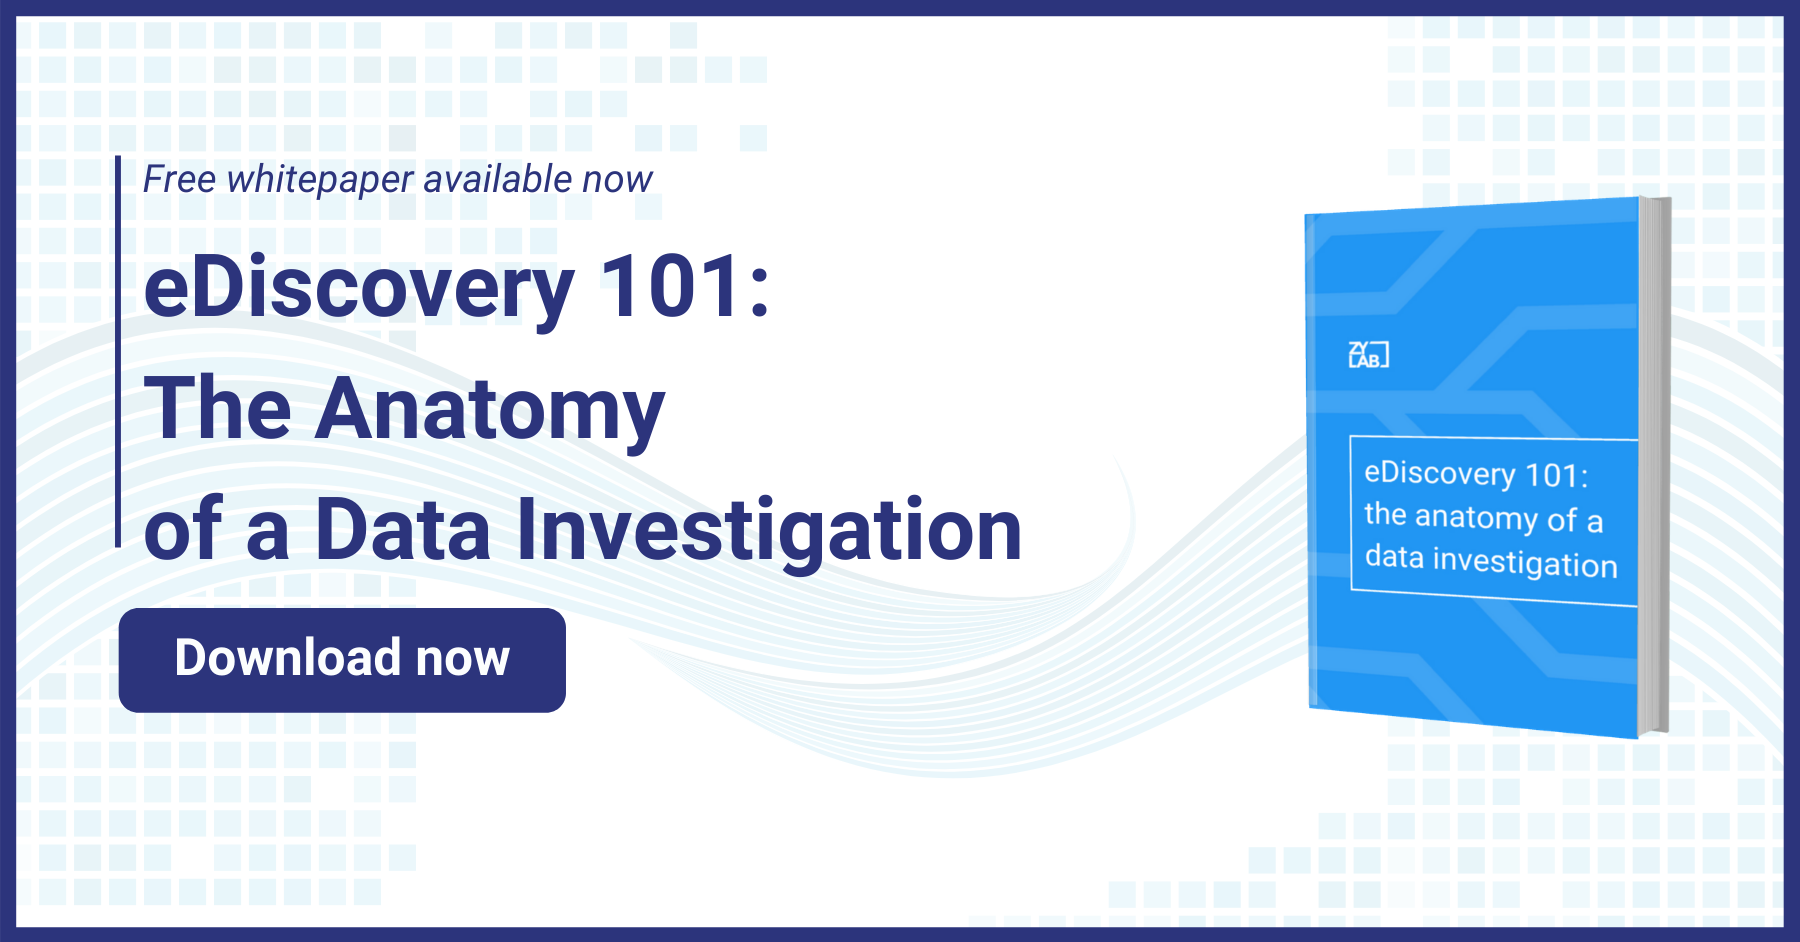 eDiscovery 101 - Lead Mag Whitepaper DL